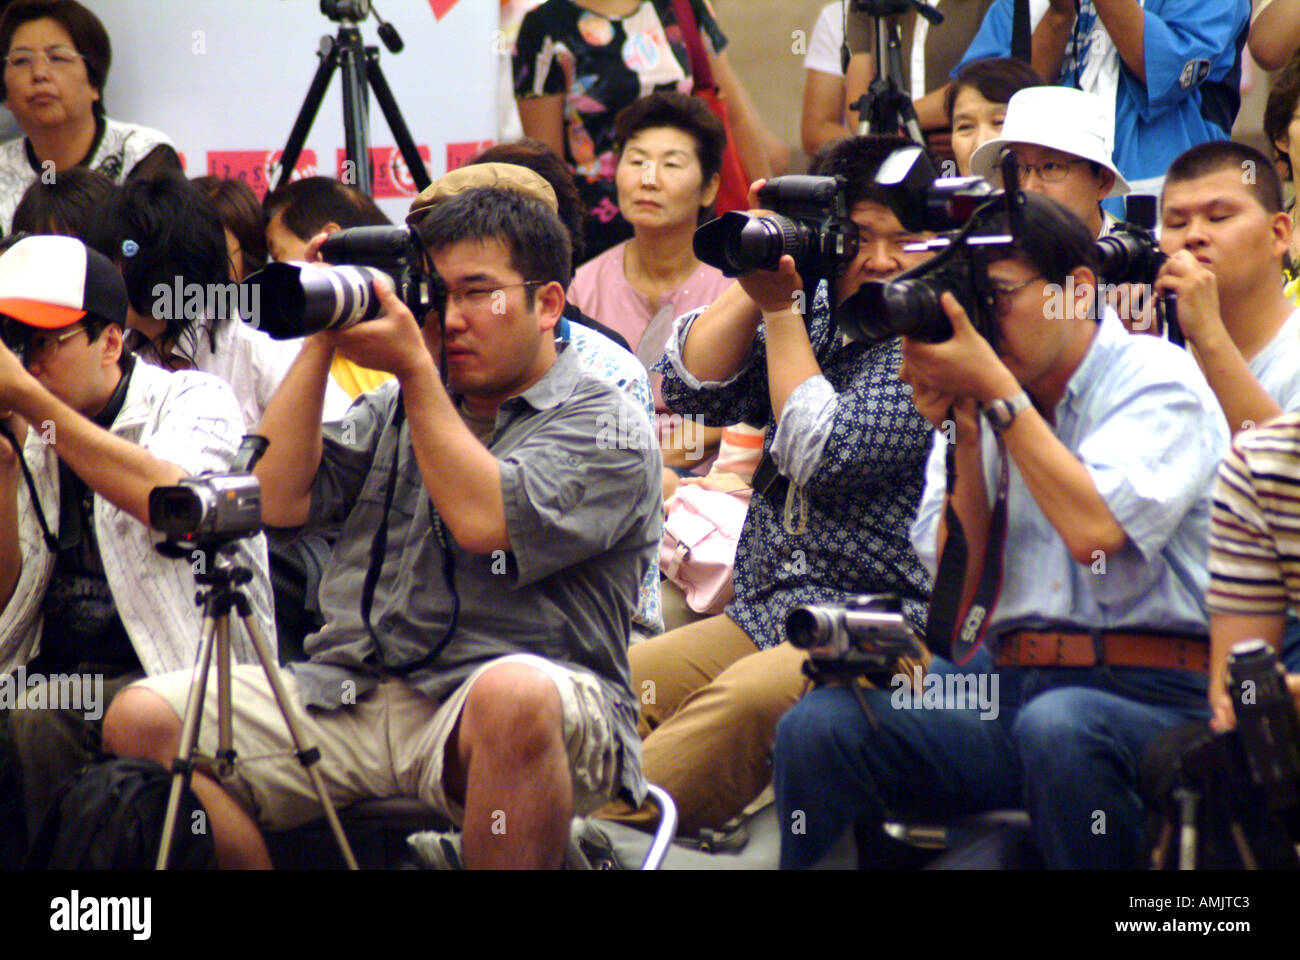 Audience photographers photographer camera viewer spectator Kyoto Japan performance concert Japanese JaPix  - Stock Image